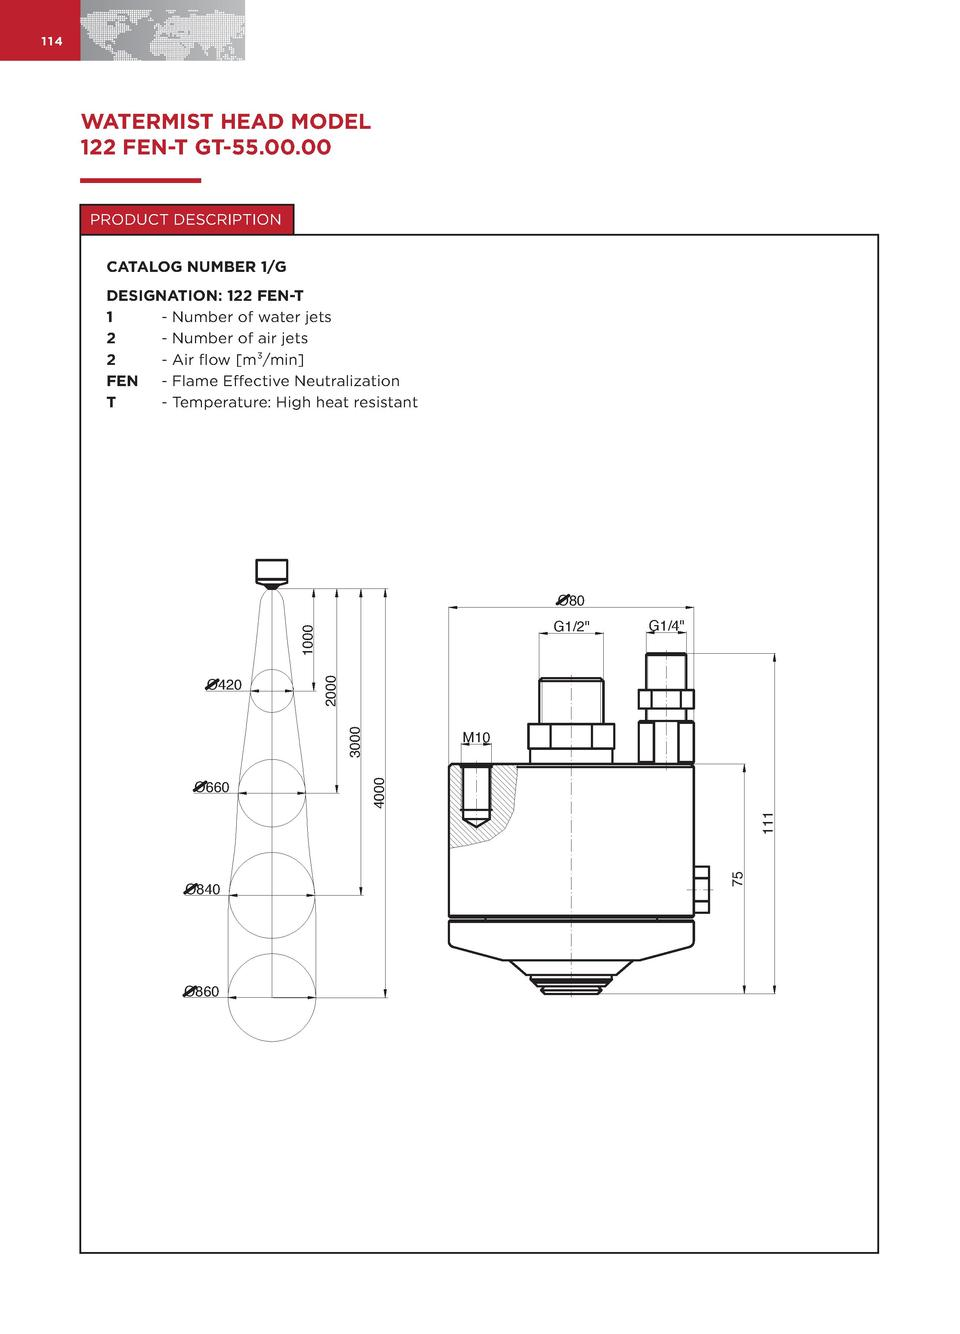 114  WATERMIST HEAD MODEL 122 FEN-T GT-55.00.00 PRODUCT DESCRIPTION CATALOG NUMBER 1 G DESIGNATION  122 FEN-T 1 - Number o...